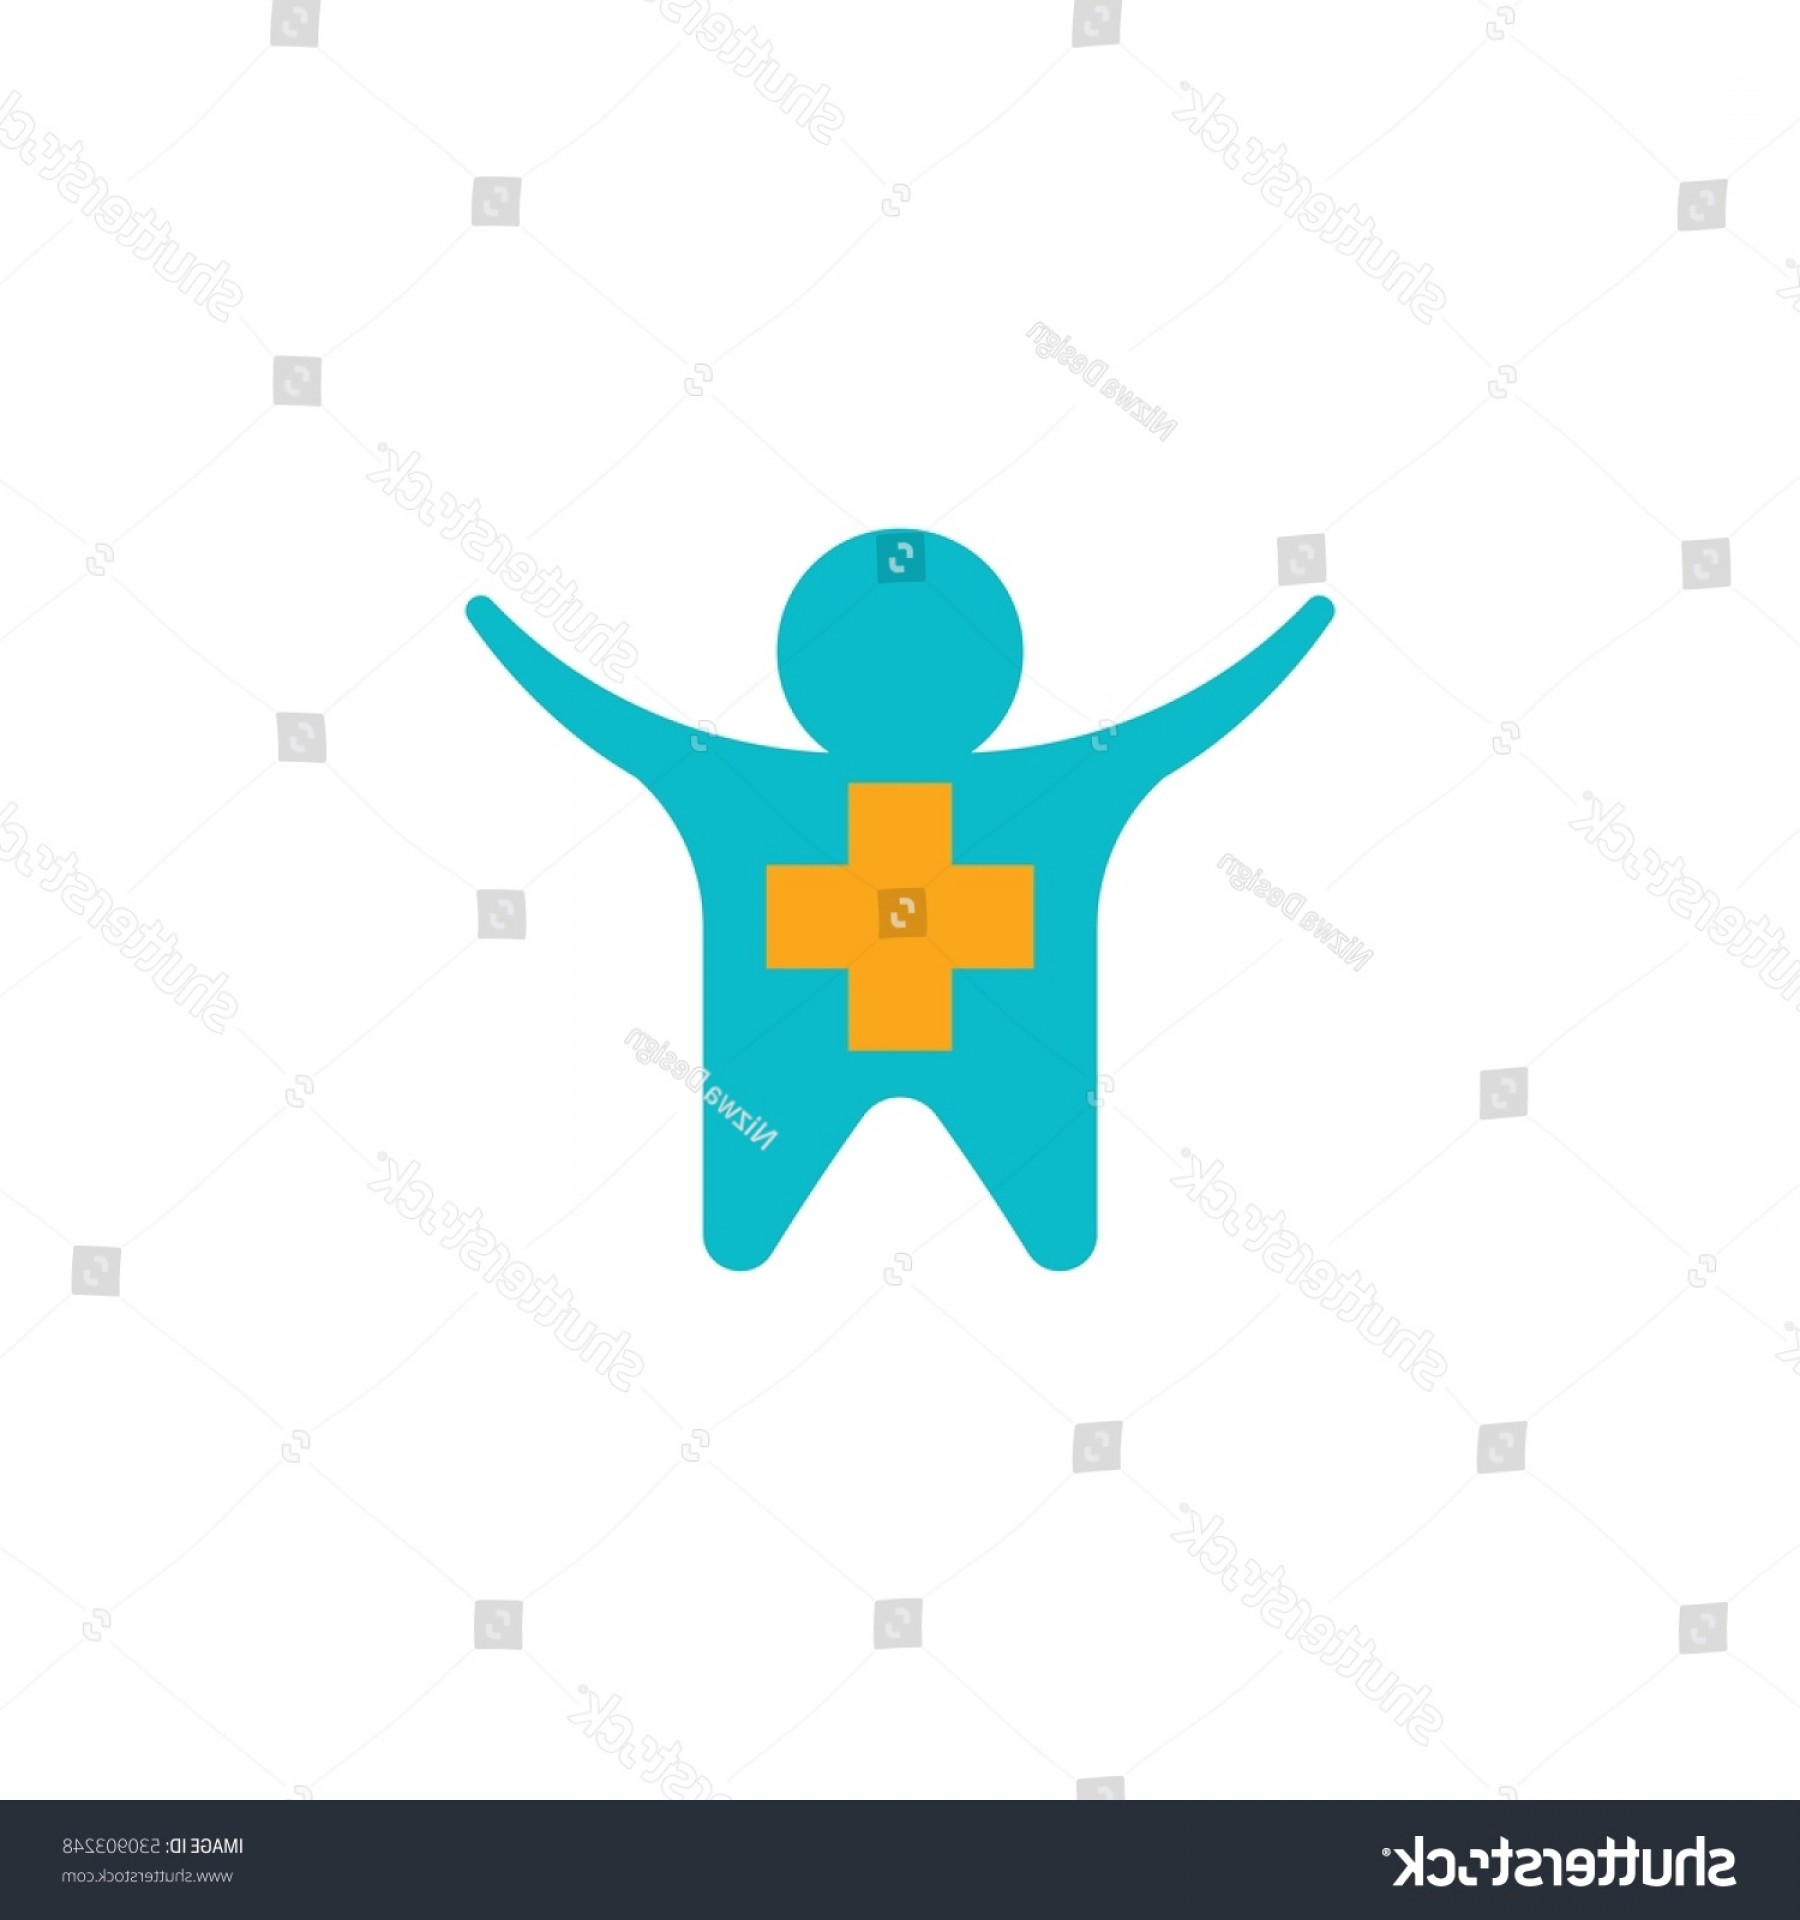 Health Vector Logo: People Health Vector Logo Design Element